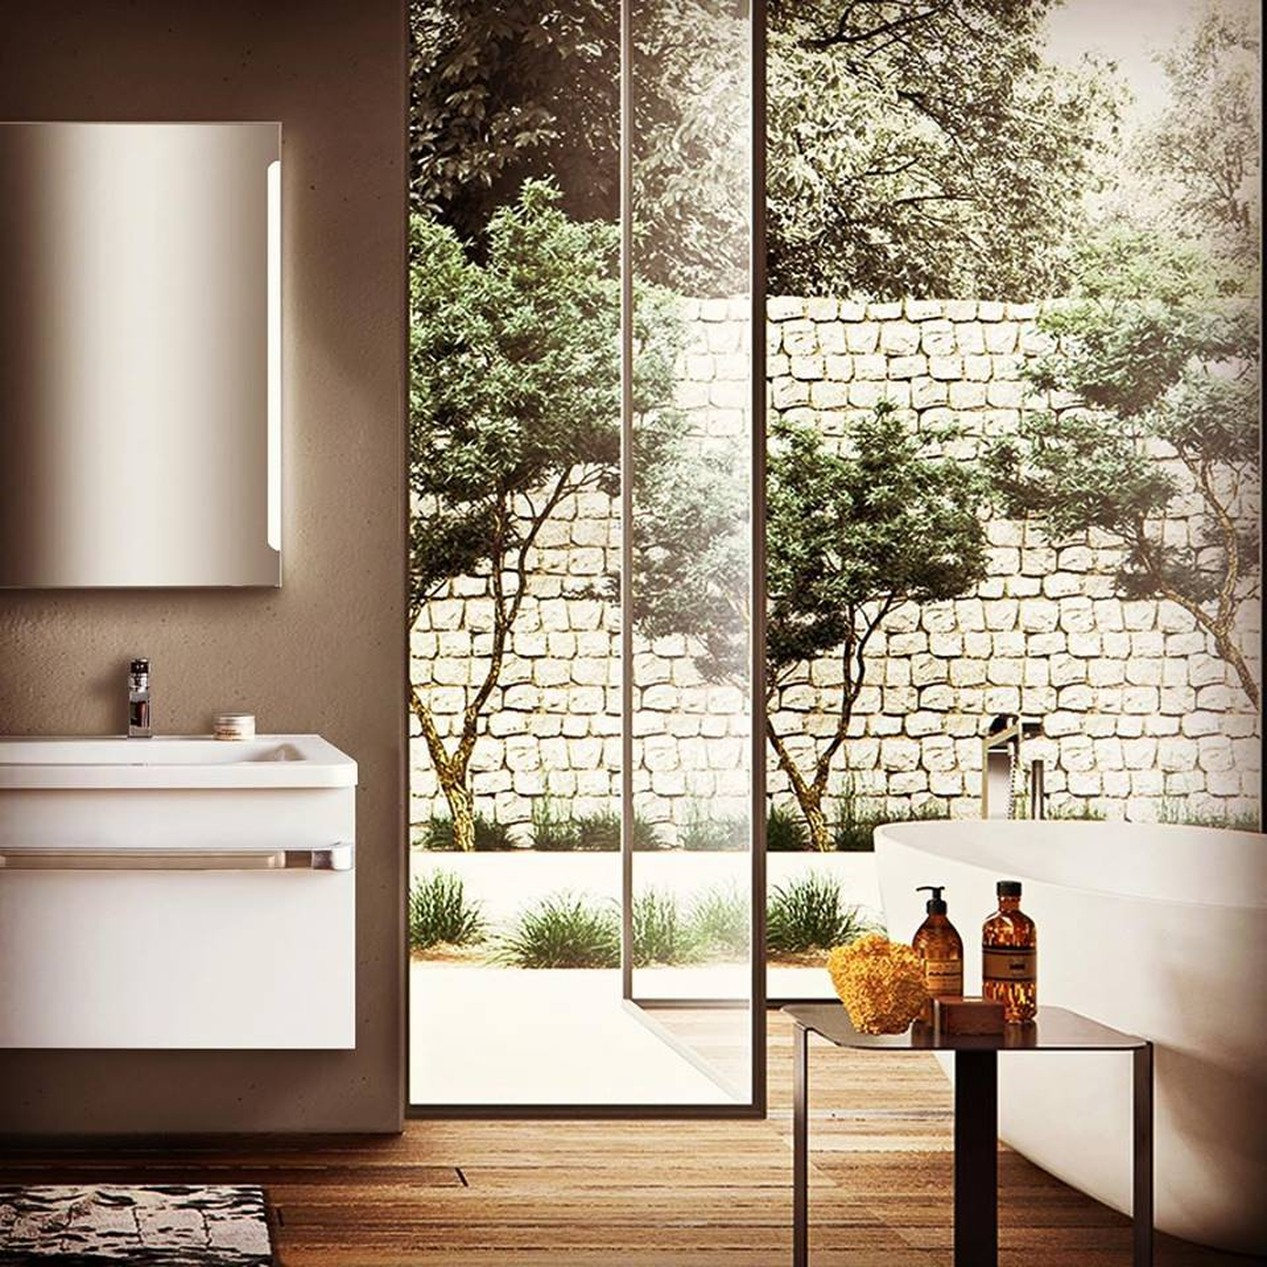 Bathroom Refurnishing Company | Unlimited Painting Solutions